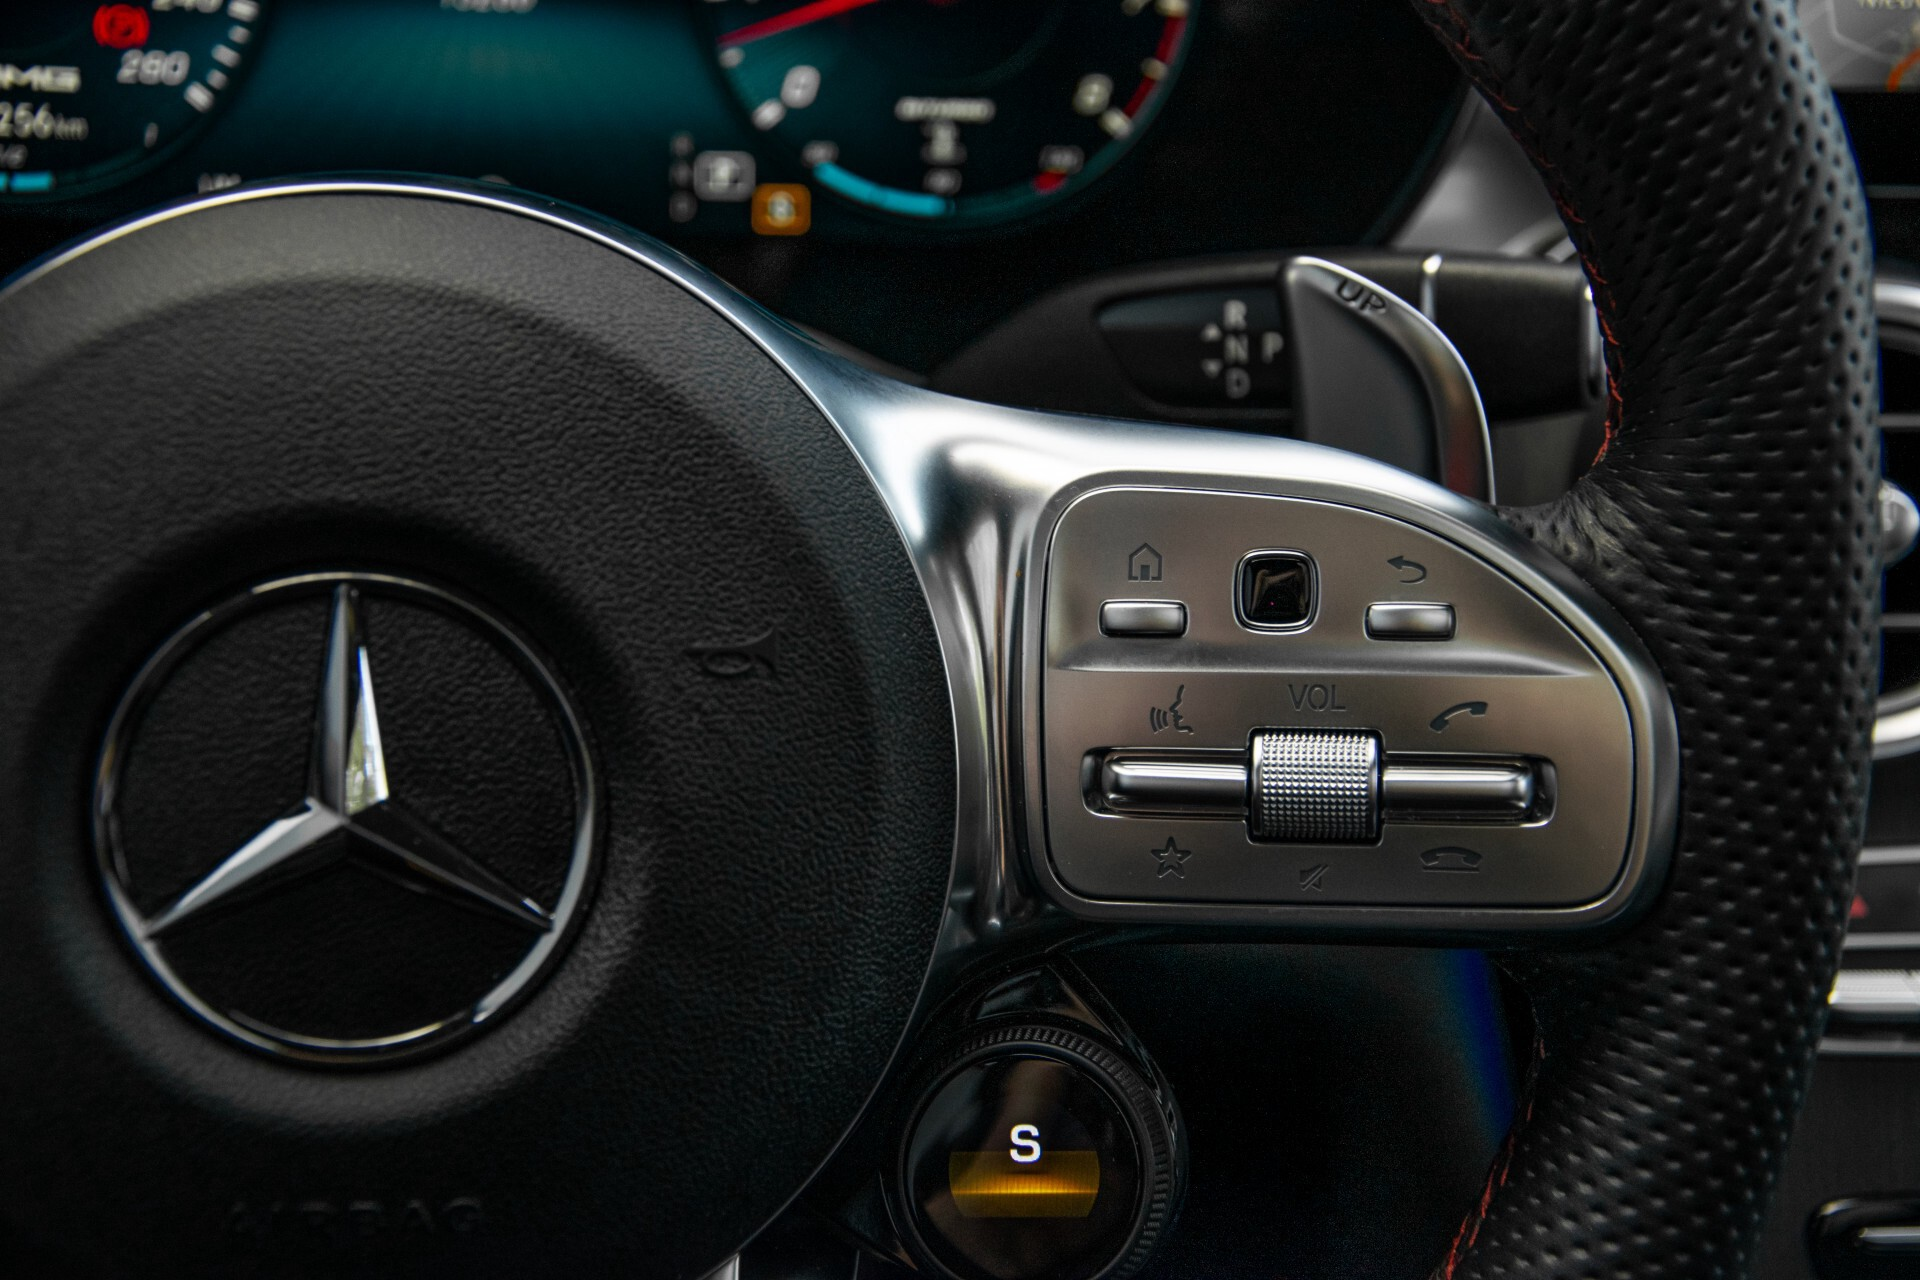 Mercedes-Benz GLC 43 AMG 4-M Night Pano/Sportuitlaat/Keyless/Distronic/Widescreen/MBUX/Trekhaak Aut9 Foto 18